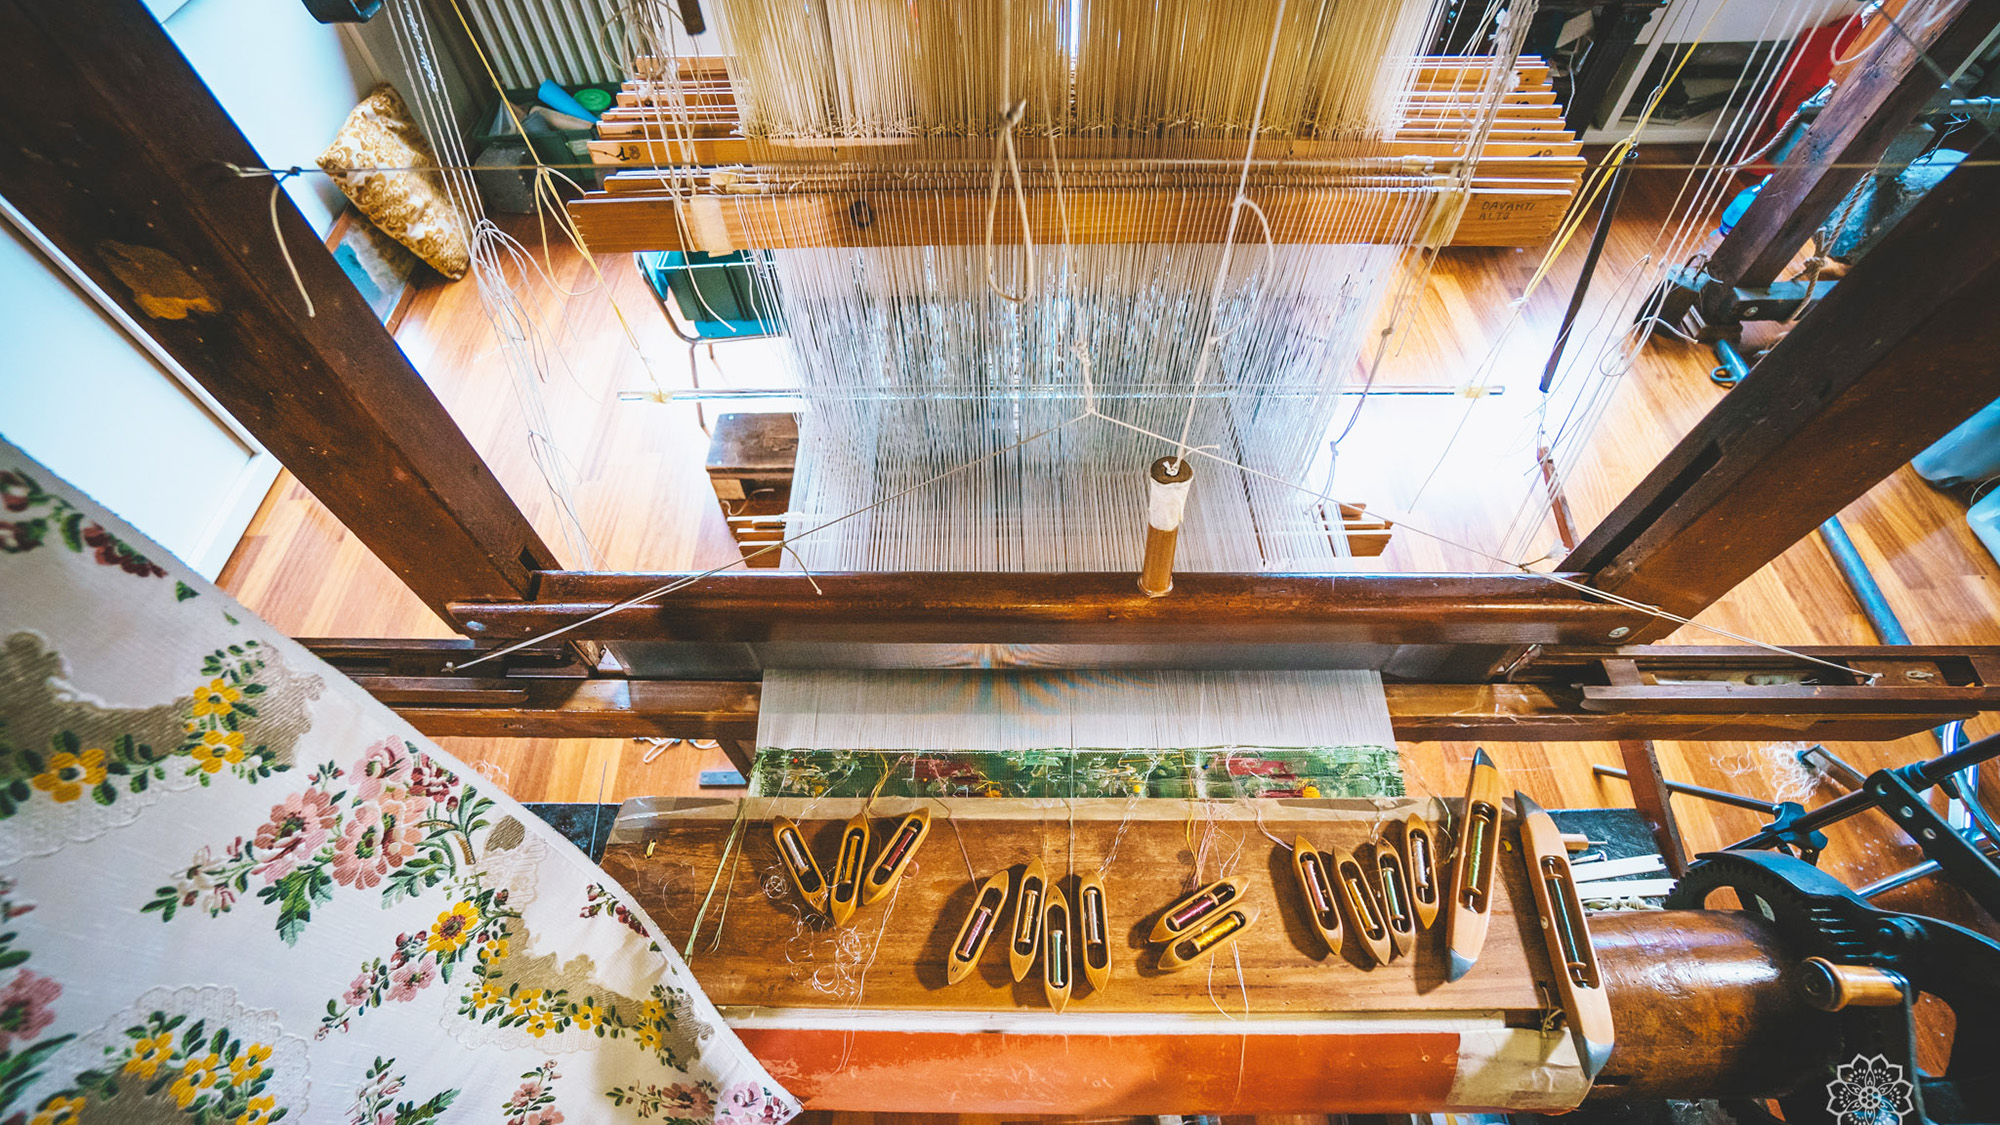 The silk museum in florence